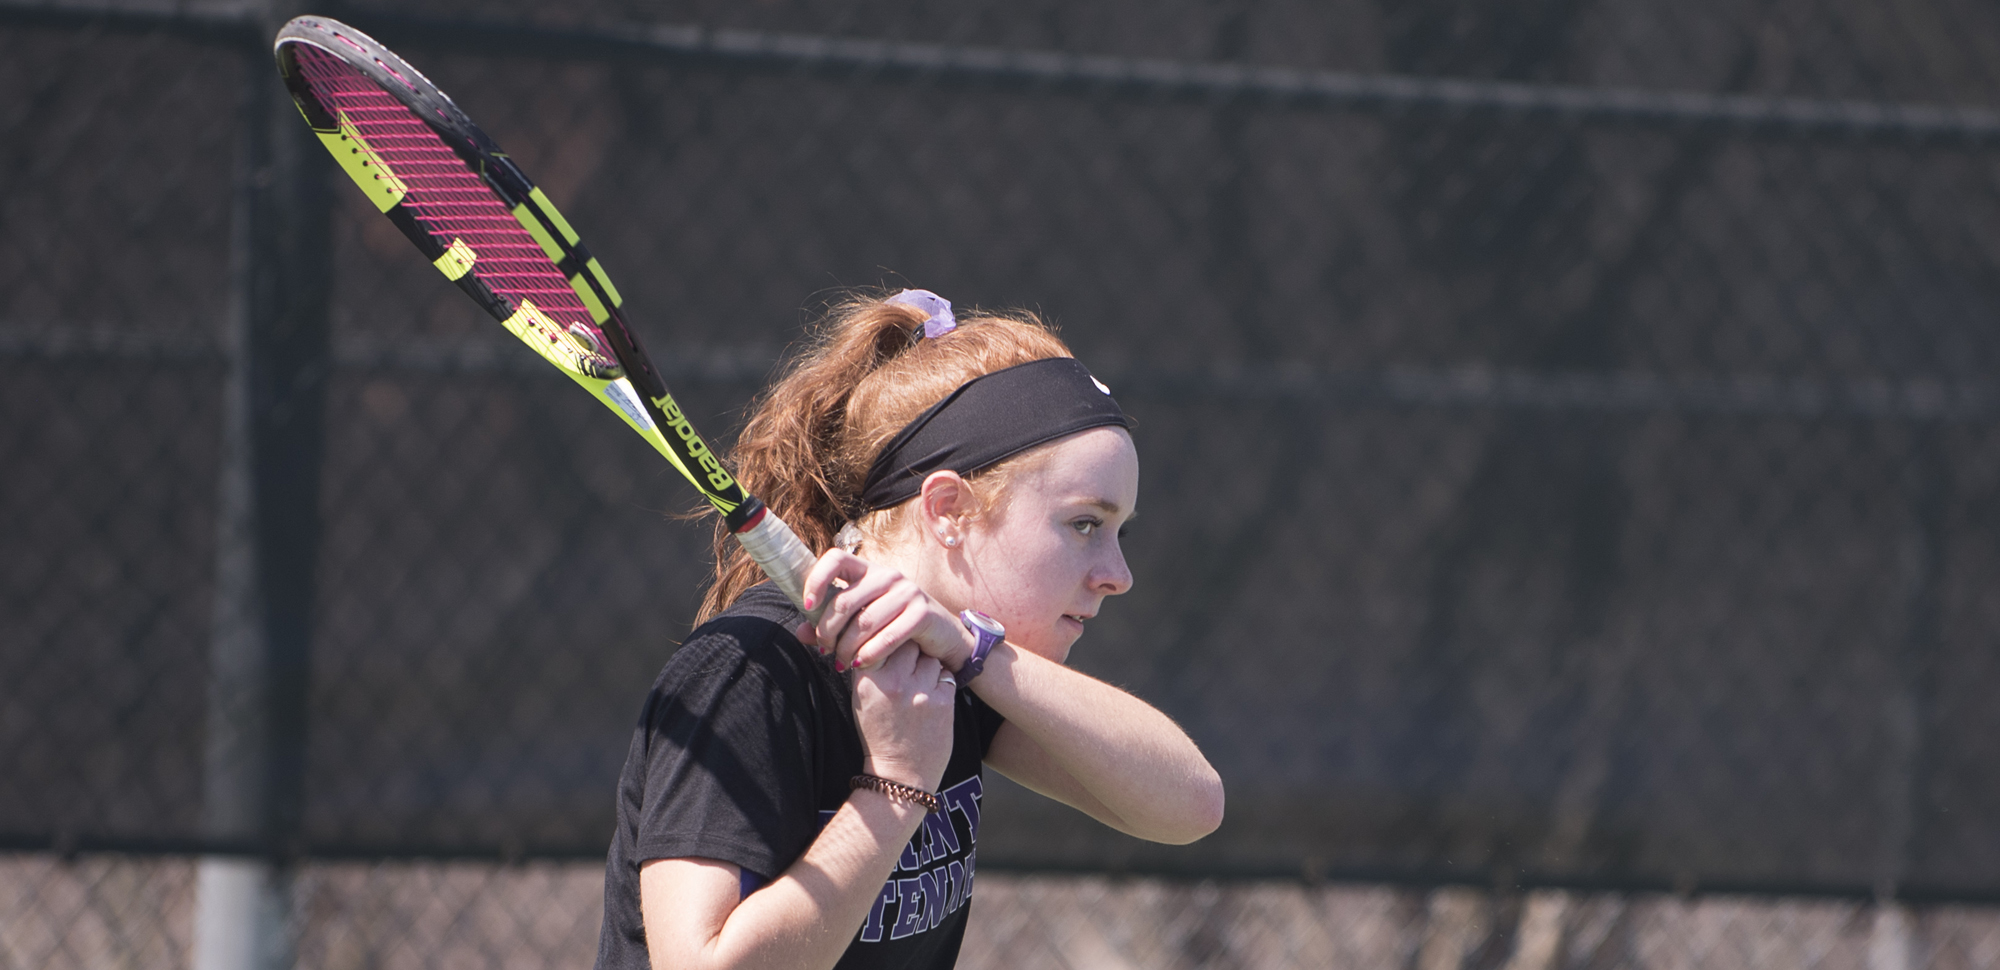 Junior Emily Kelly had wins in singles and doubles to help the Royals defeat East Stroudsburg on Saturday.